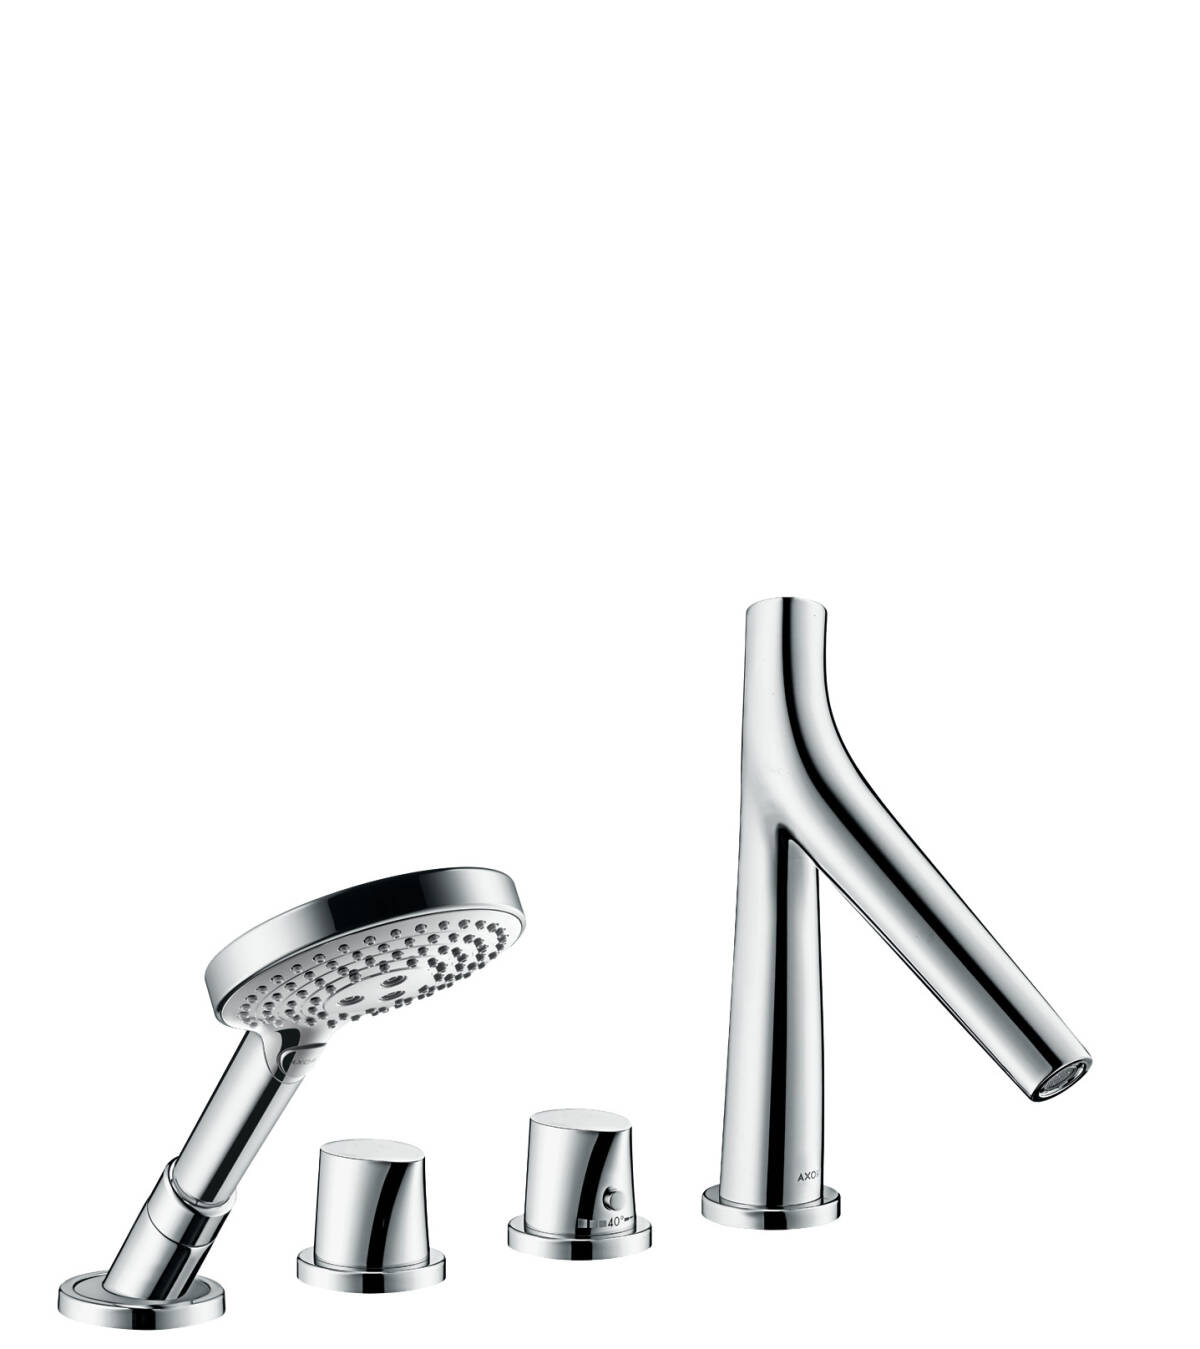 4-hole tile mounted thermostatic bath mixer, Chrome, 12426000